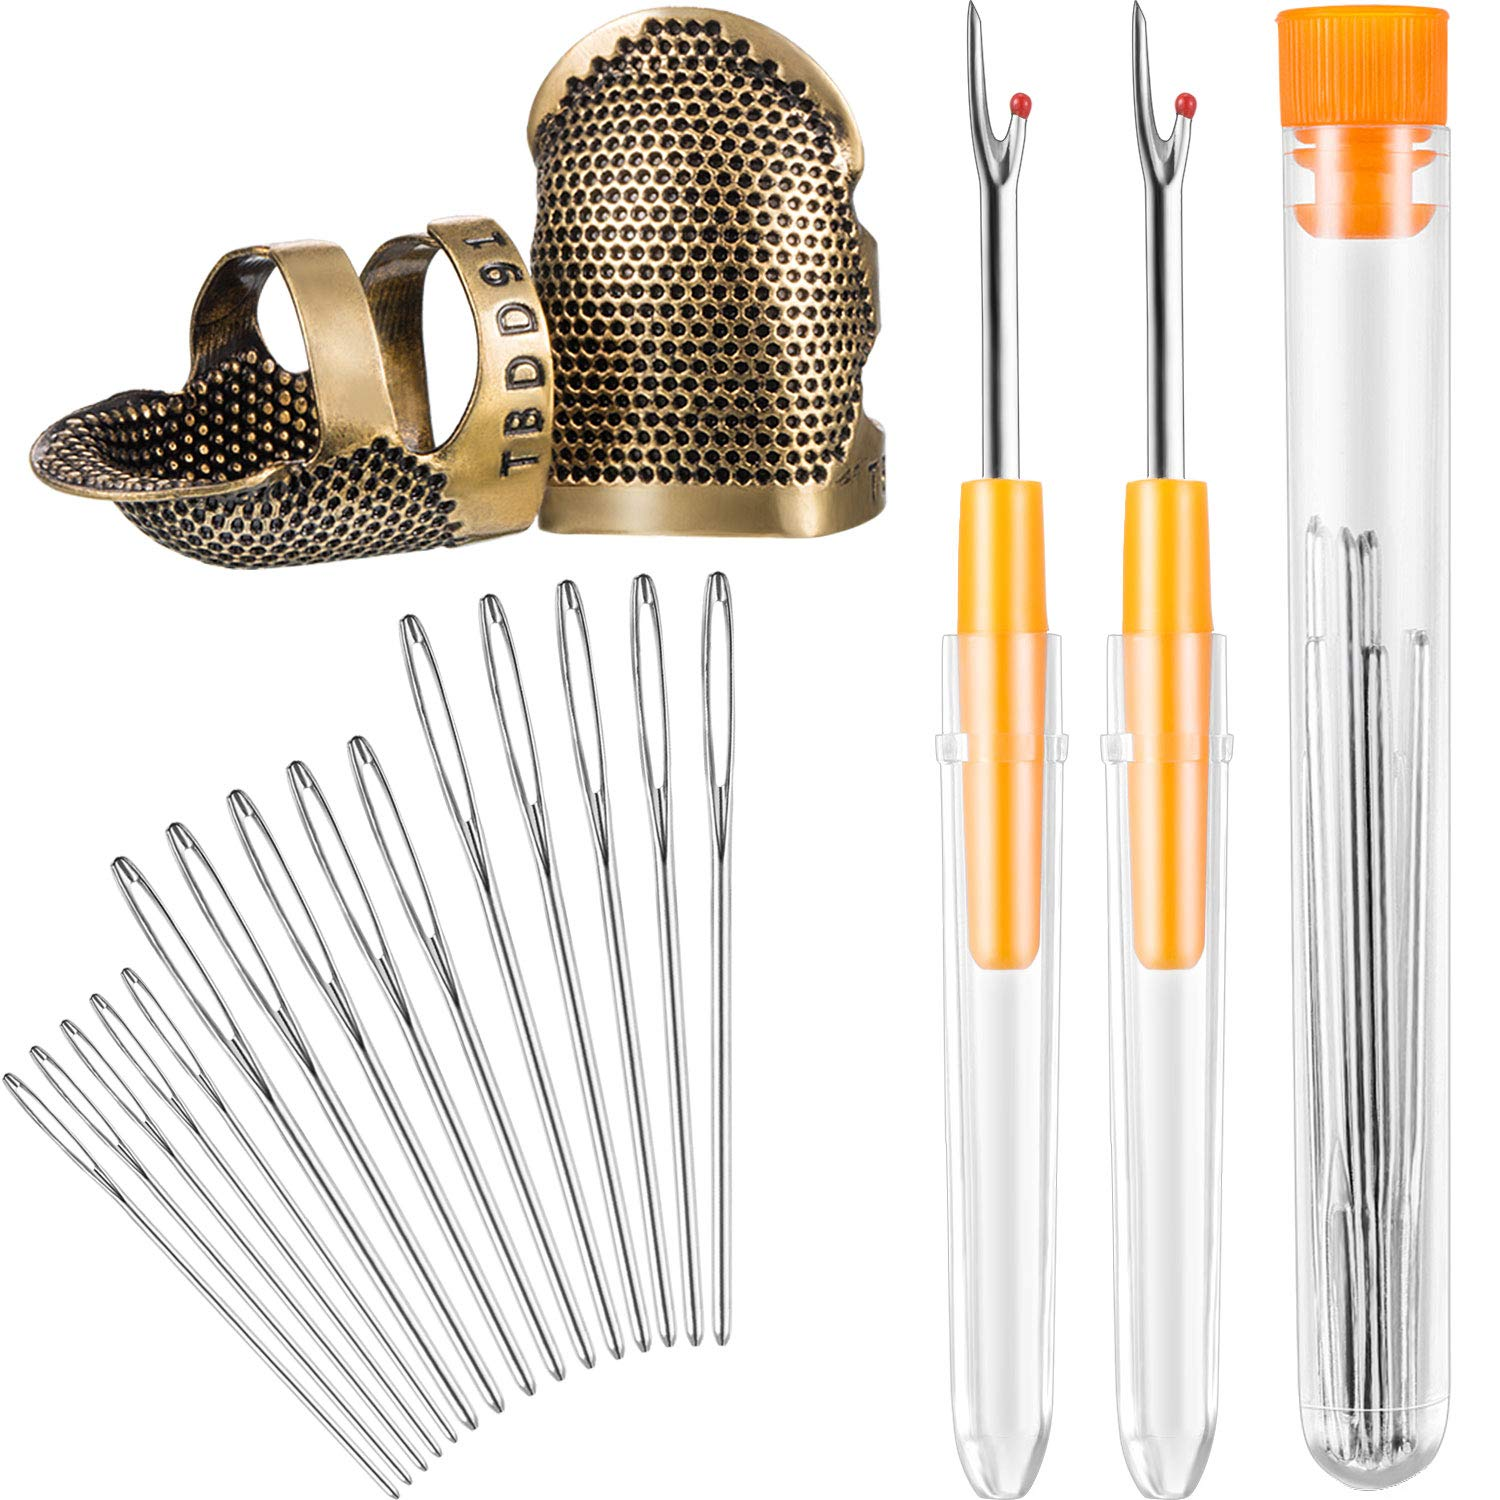 Hestya Sewing Tool kit, 2 Pieces Sewing Thimble Finger Protector Copper Adjustable Finger Protector and 2 Pieces Seam Stitch Rippers and 15 Pieces Large-Eye Yarn Knitting Needles 4337013092